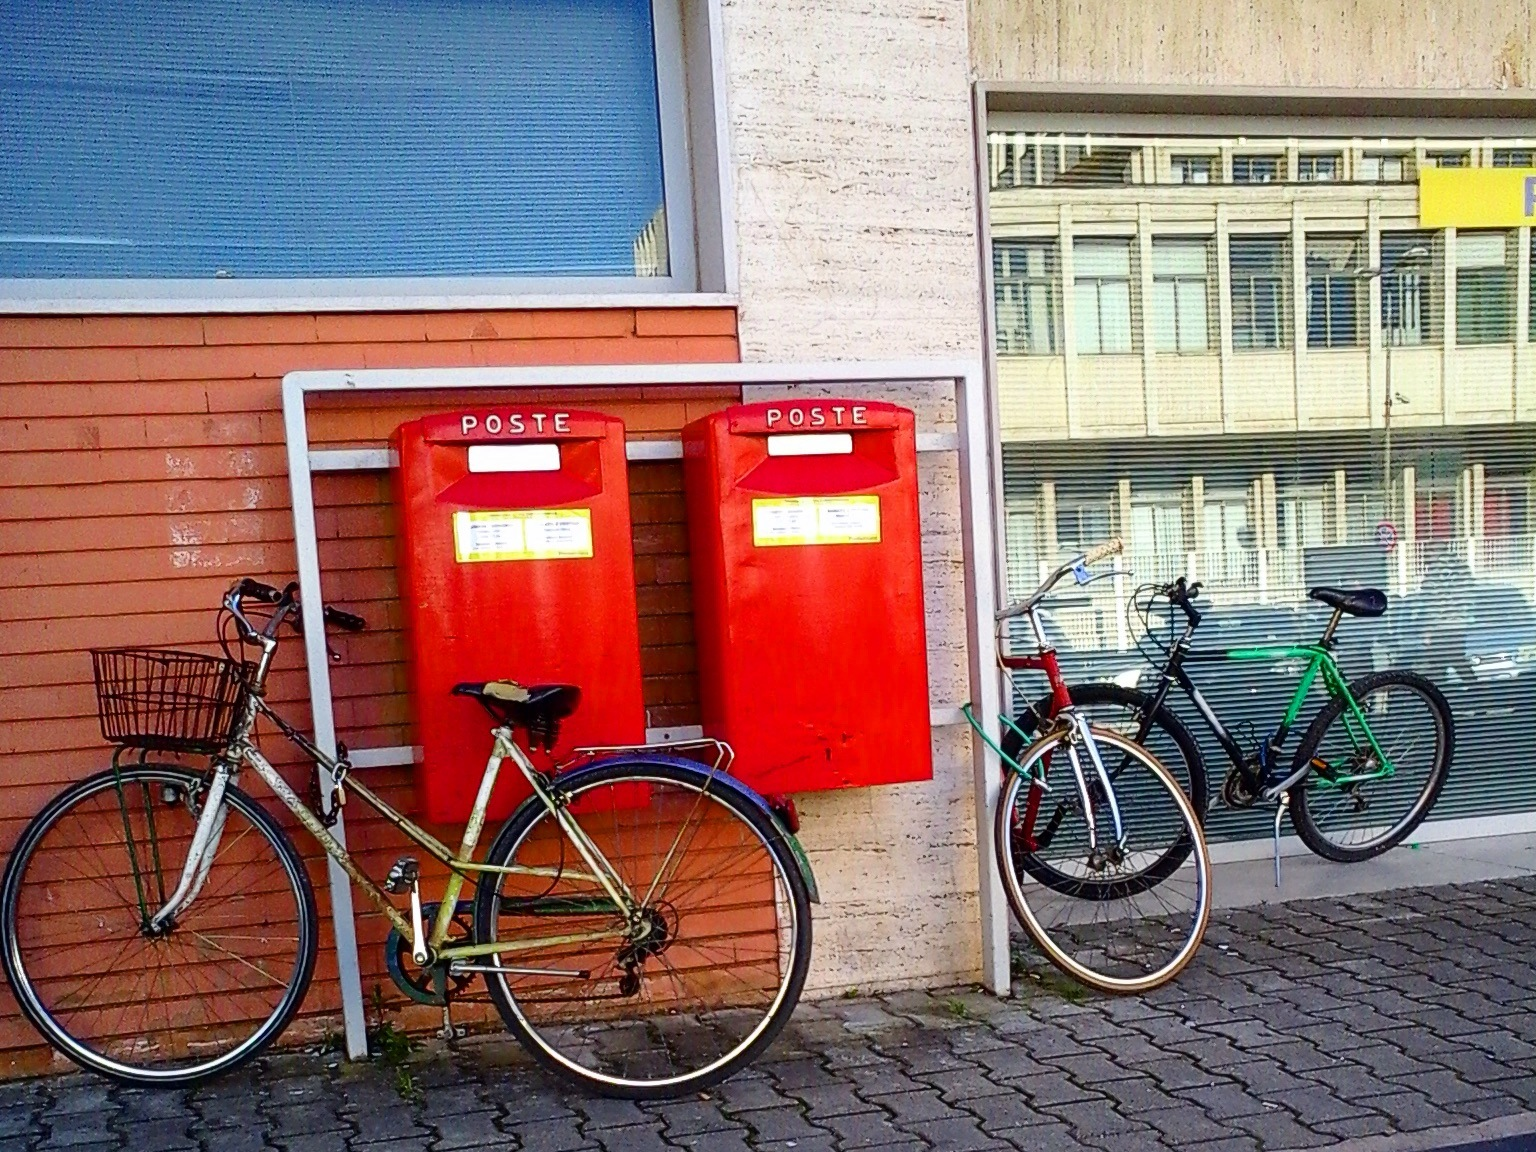 Mailbox and bicycle by Salvatore Bertolino